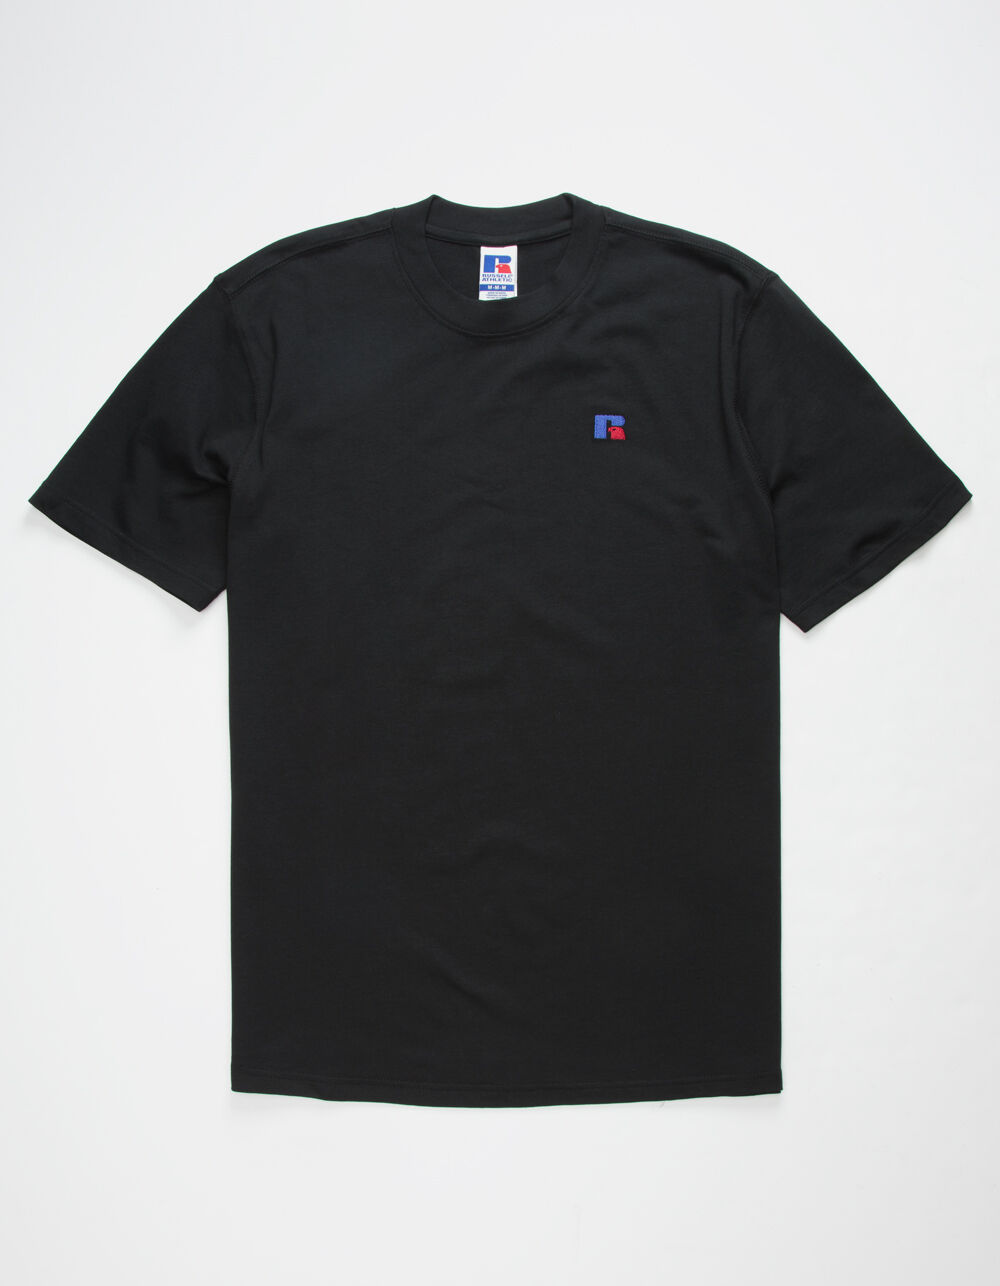 RUSSELL ATHLETIC Baseliner Black T-Shirt